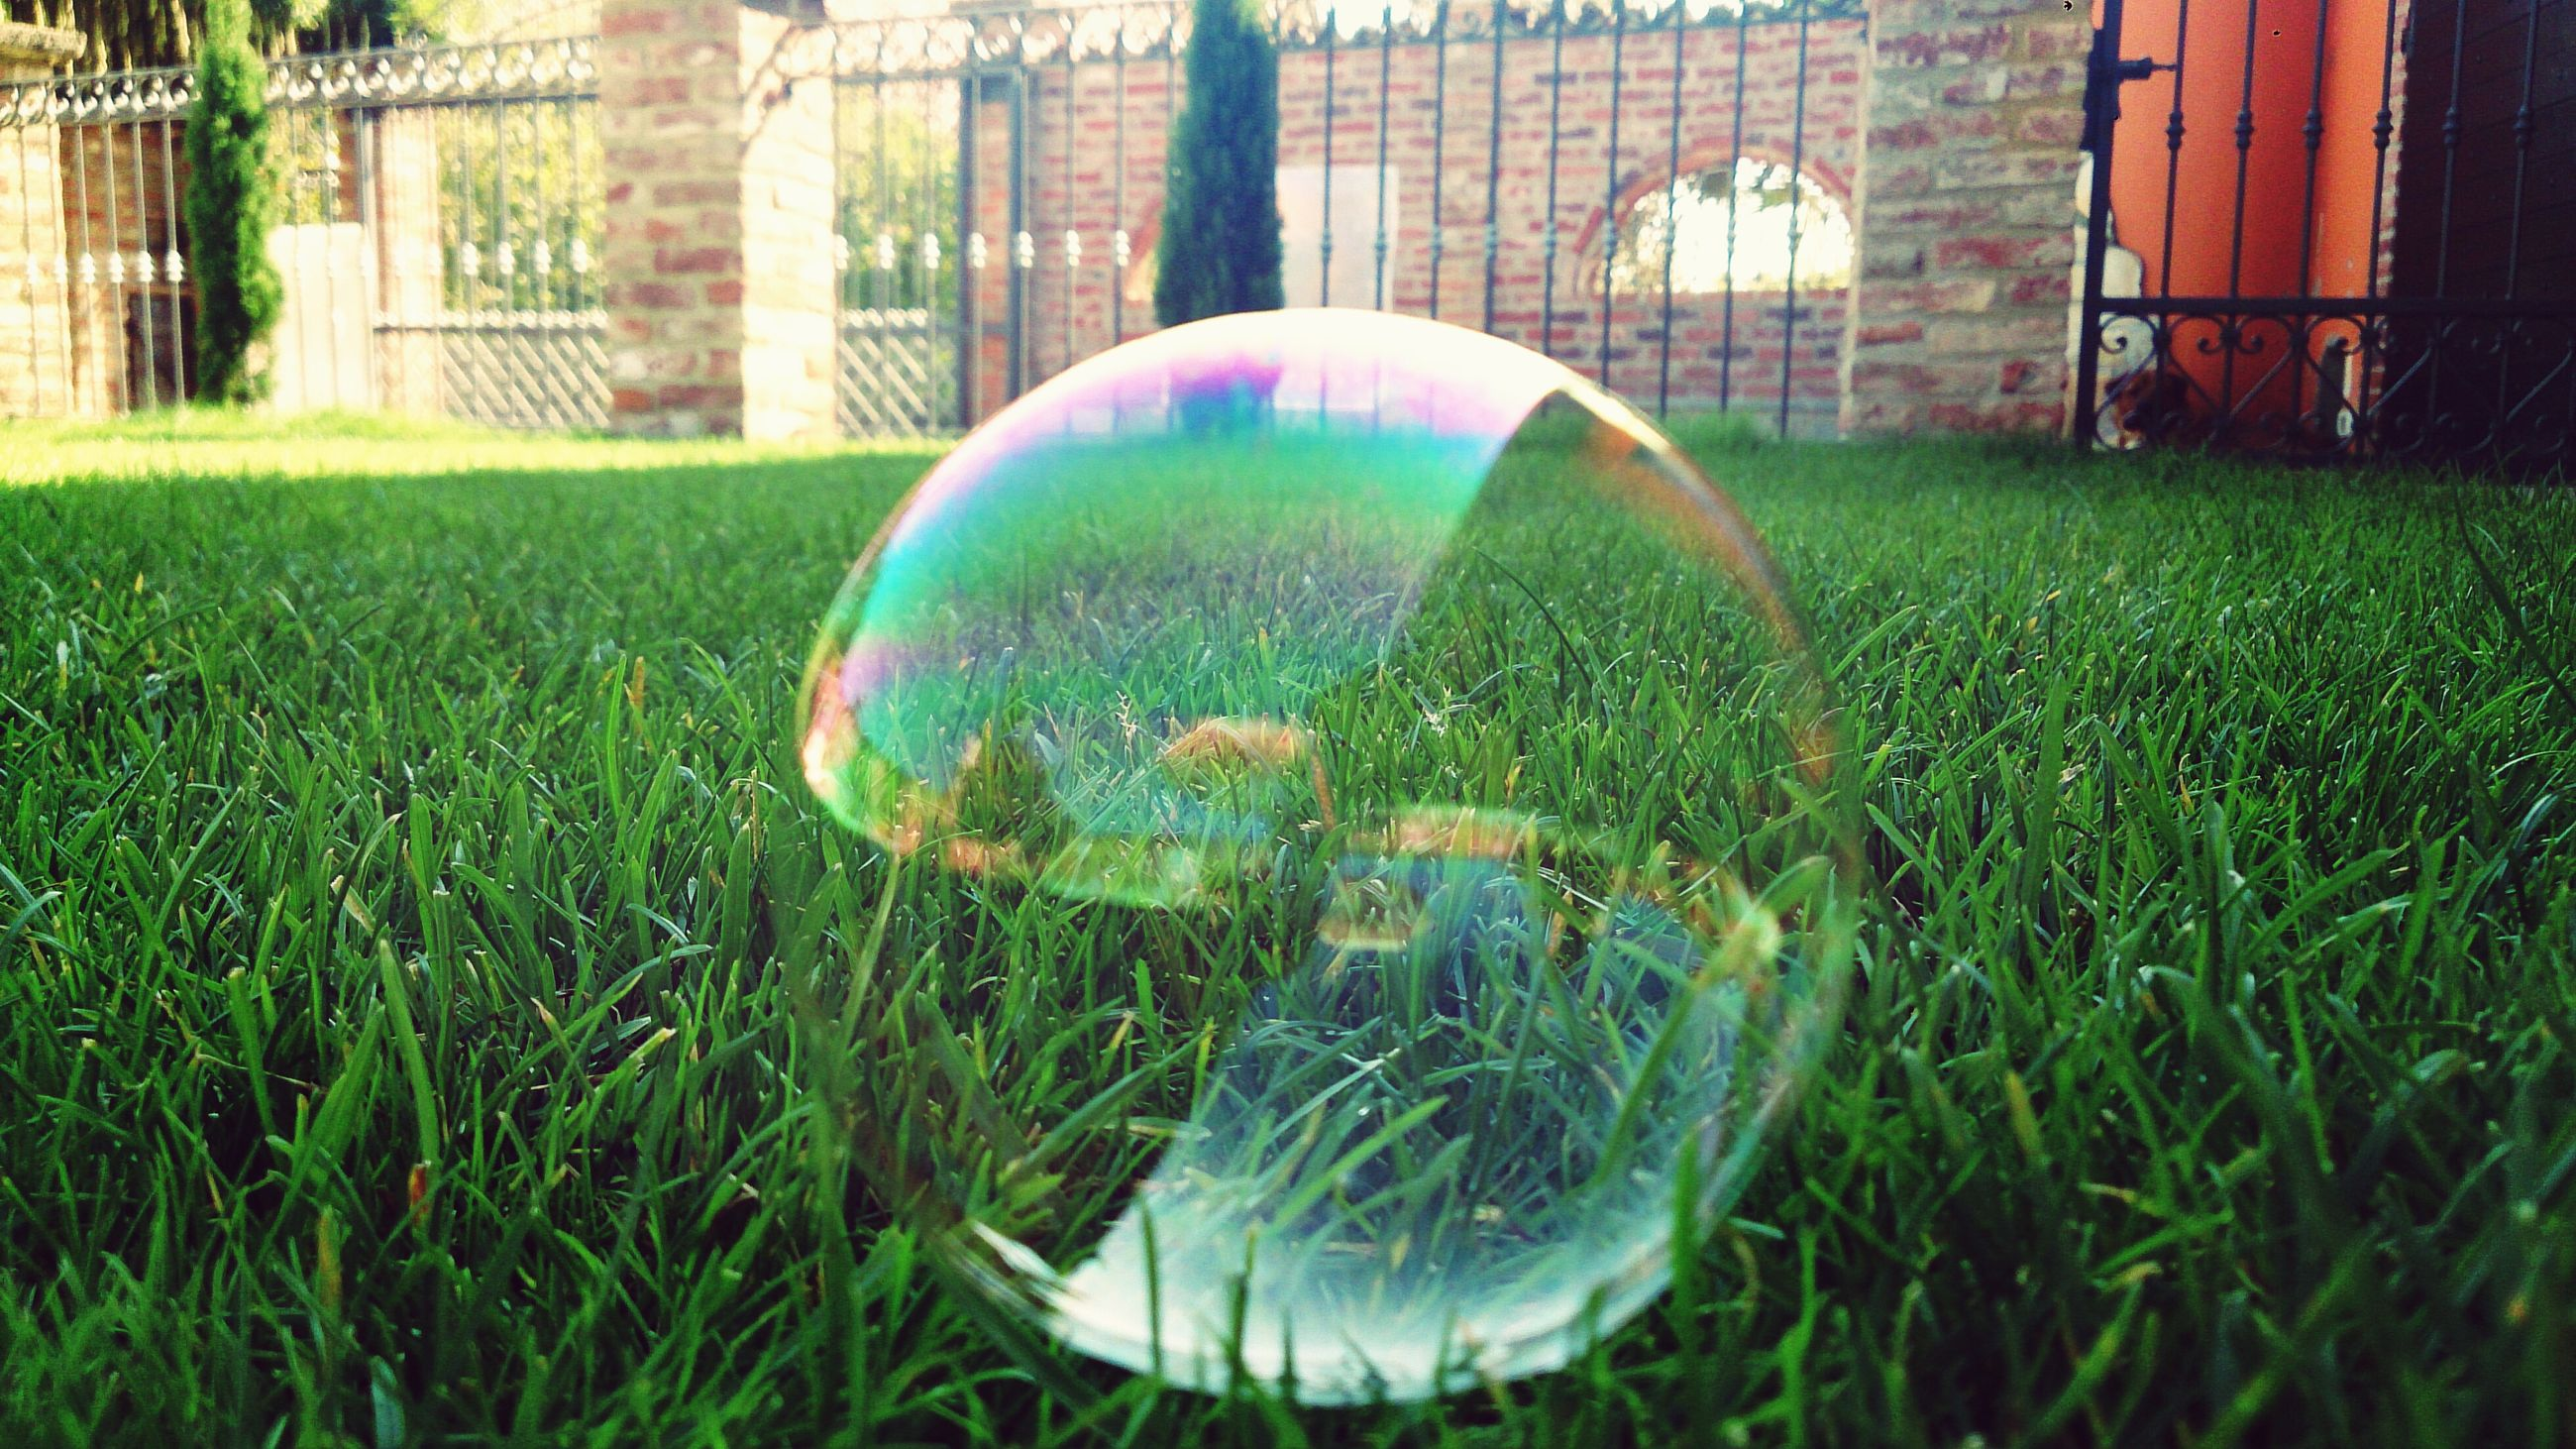 grass, green color, building exterior, built structure, lawn, sphere, bubble, close-up, architecture, reflection, multi colored, focus on foreground, field, outdoors, transparent, day, ball, no people, park - man made space, glass - material